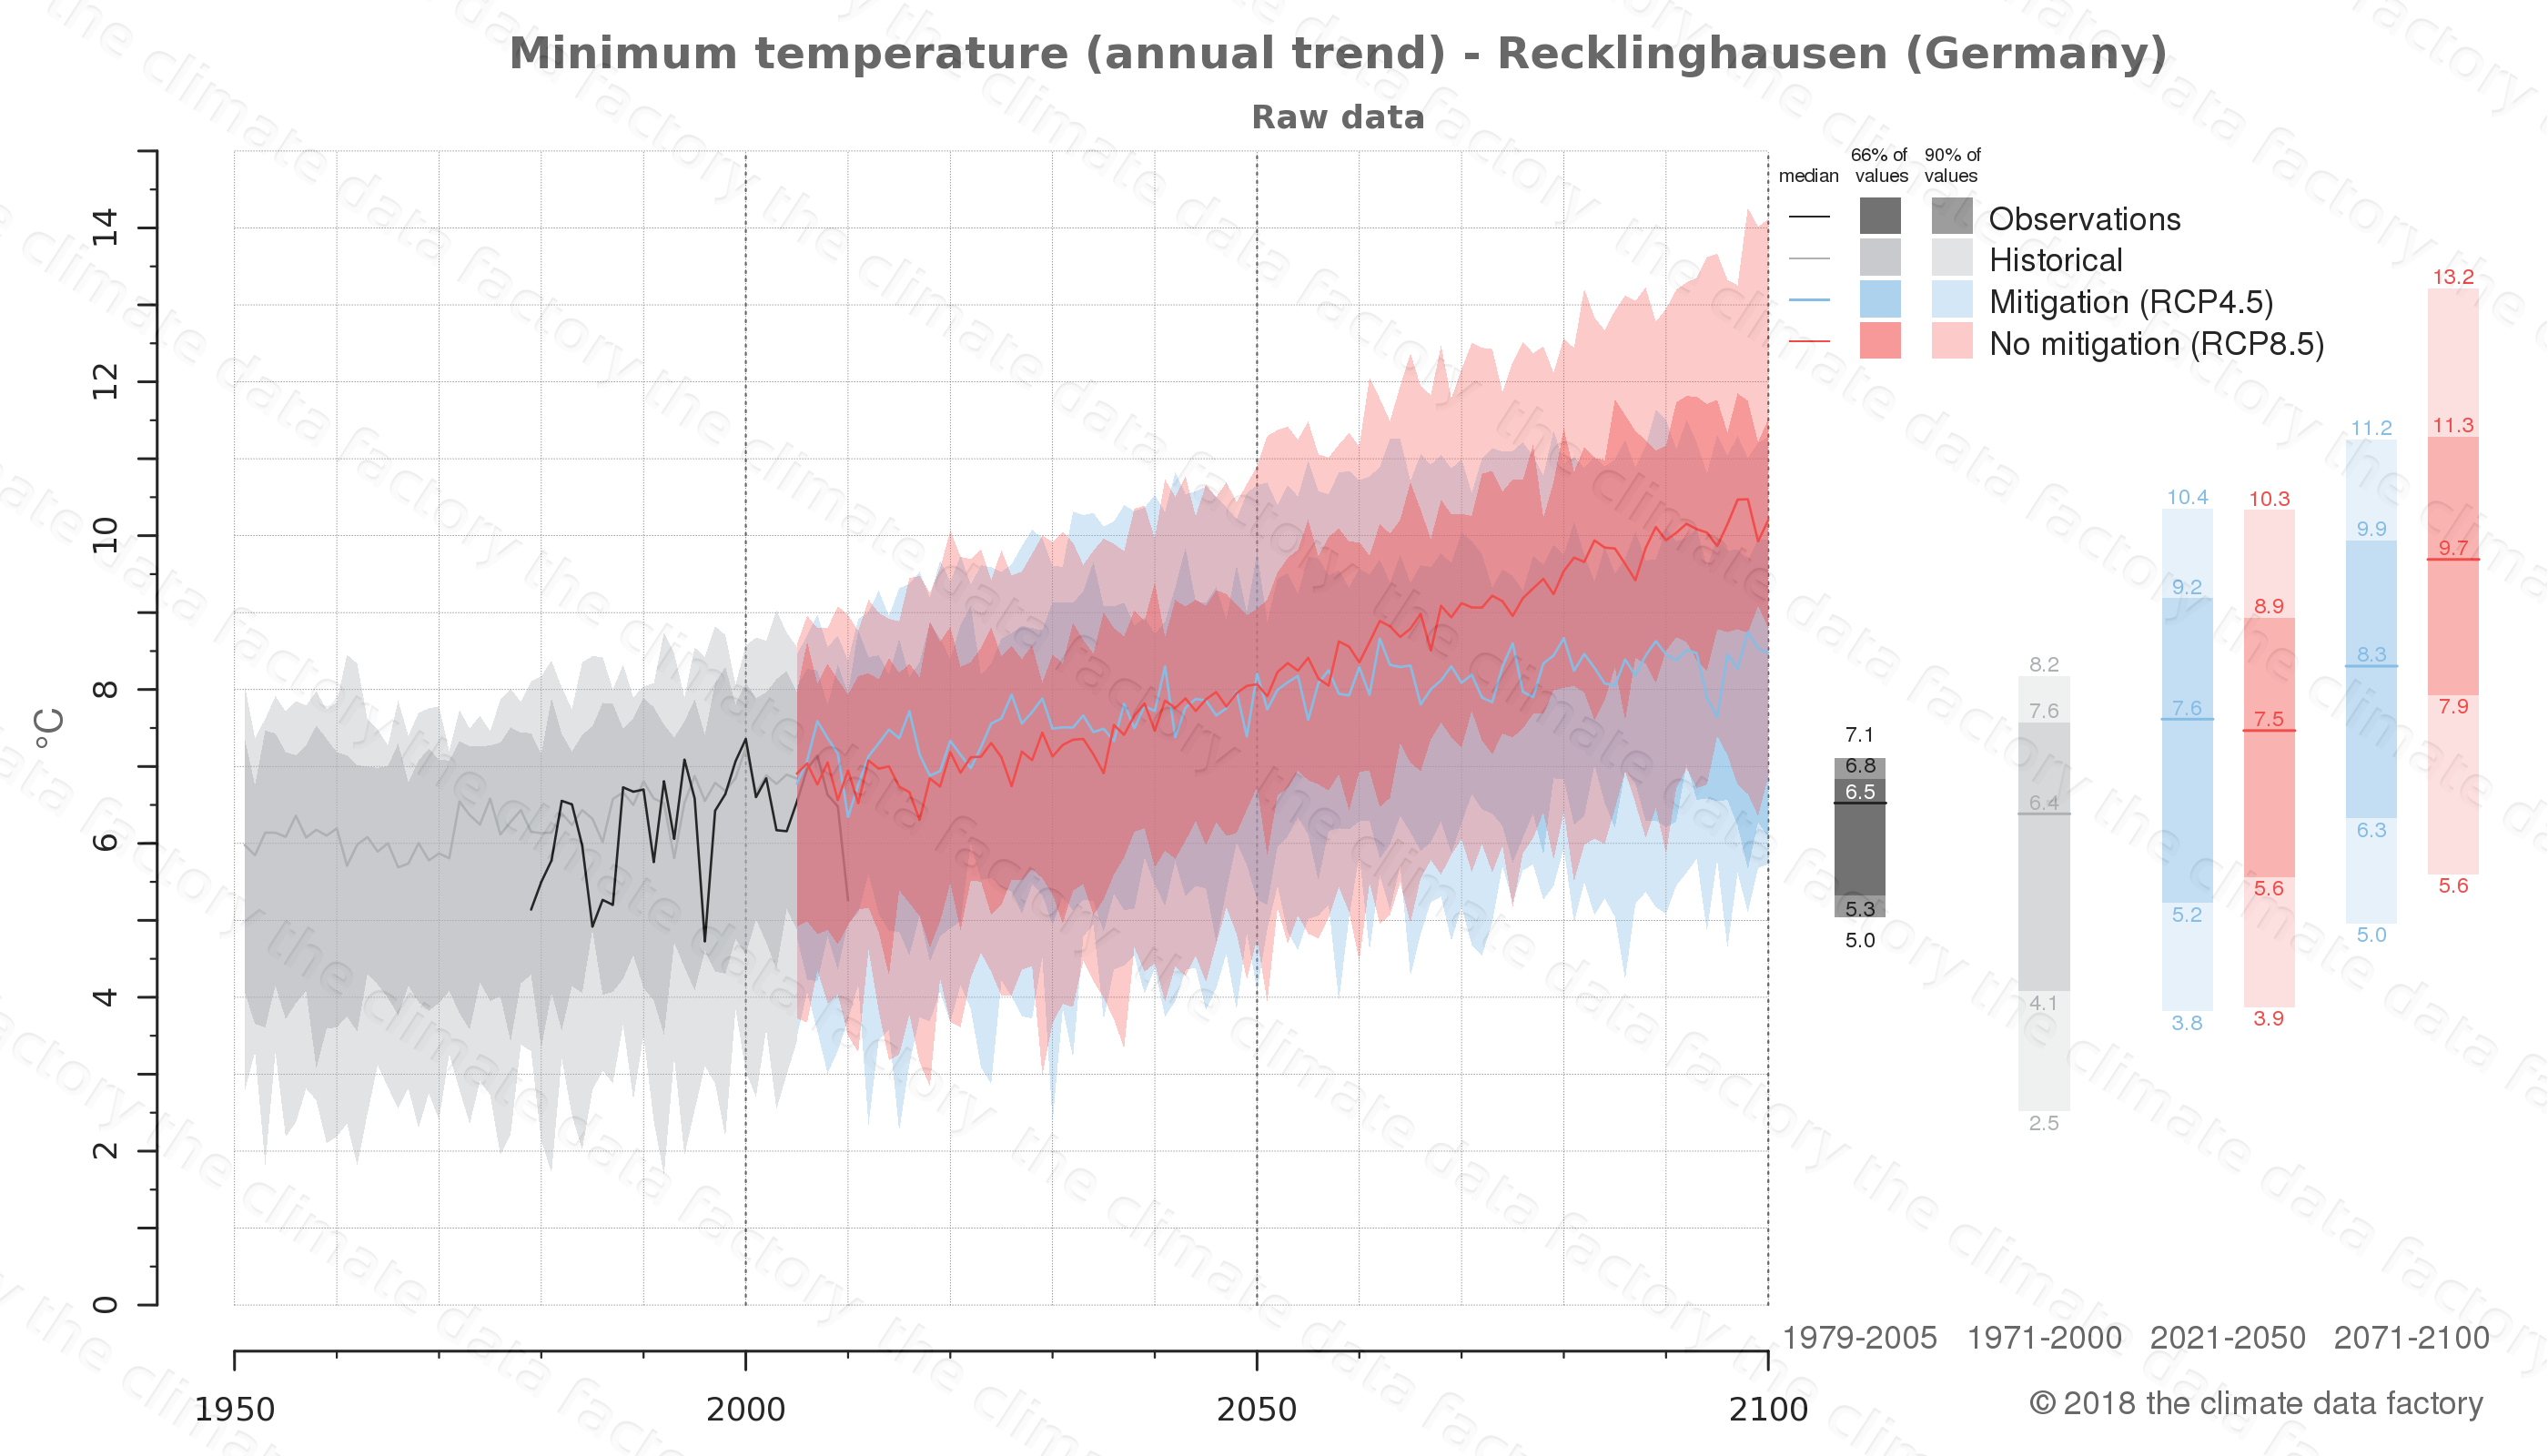 climate change data policy adaptation climate graph city data minimum-temperature recklinghausen germany